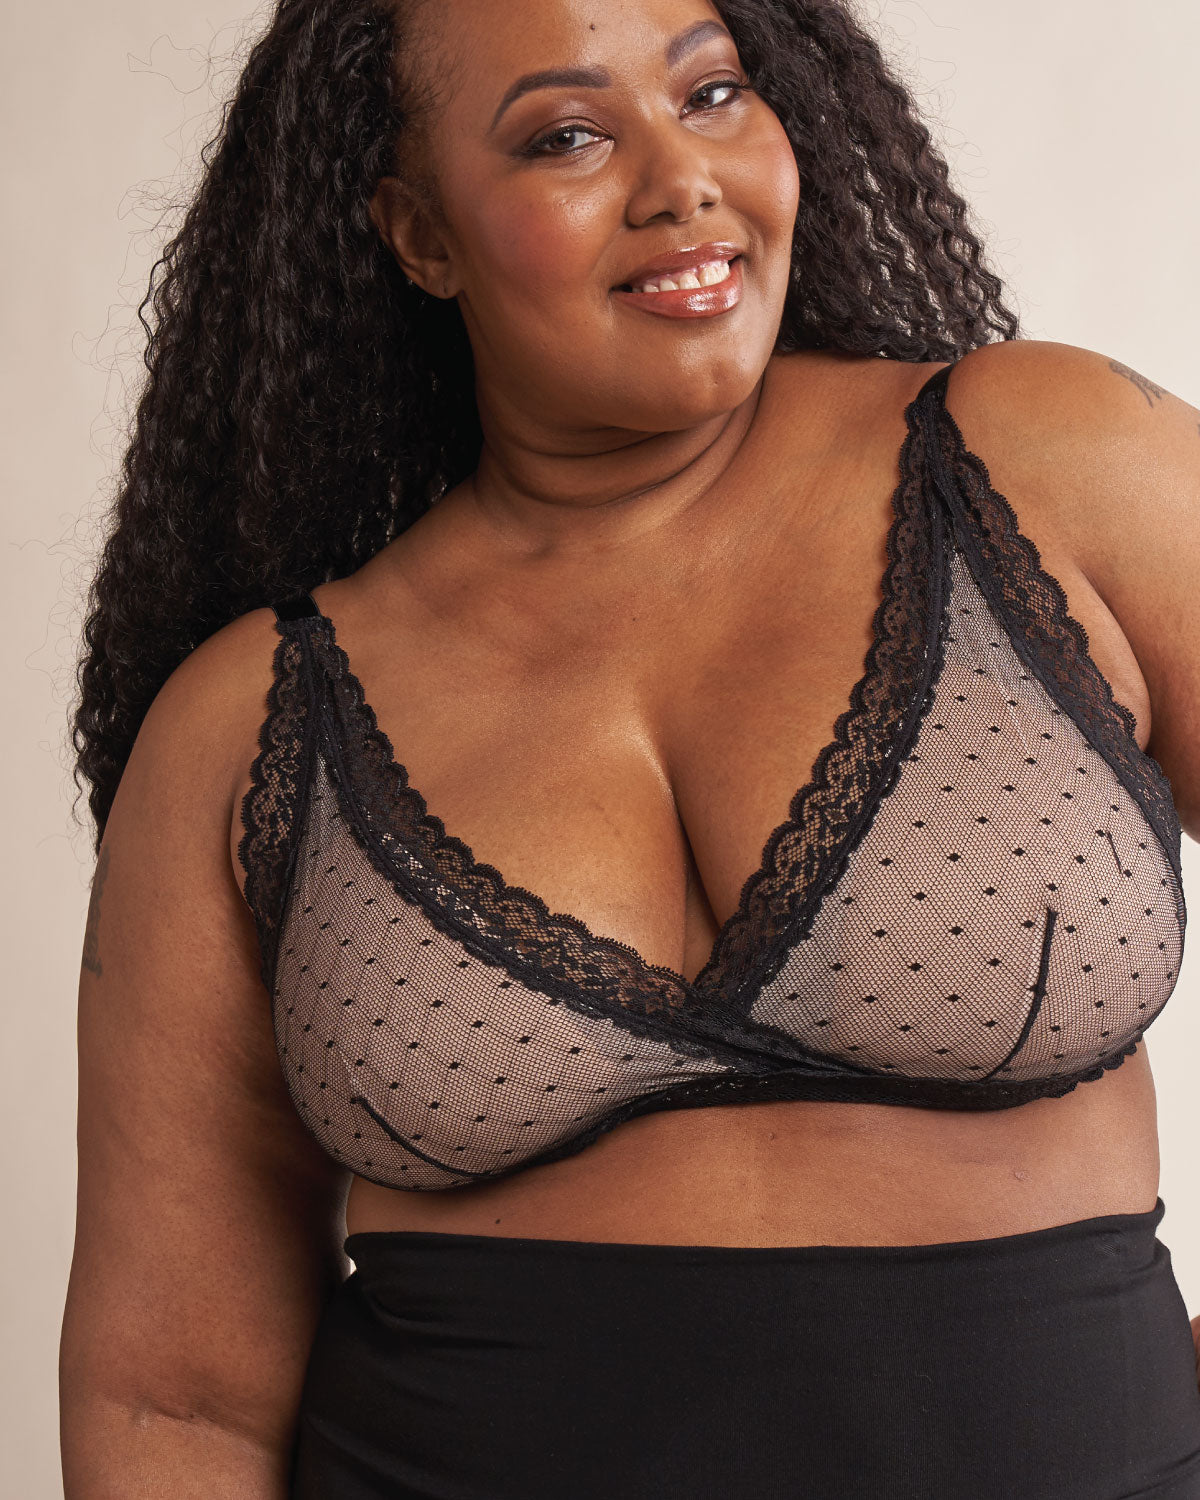 Black, pocketed wrap front lace bralette with wireless cups, back closure and adjustable straps on model.